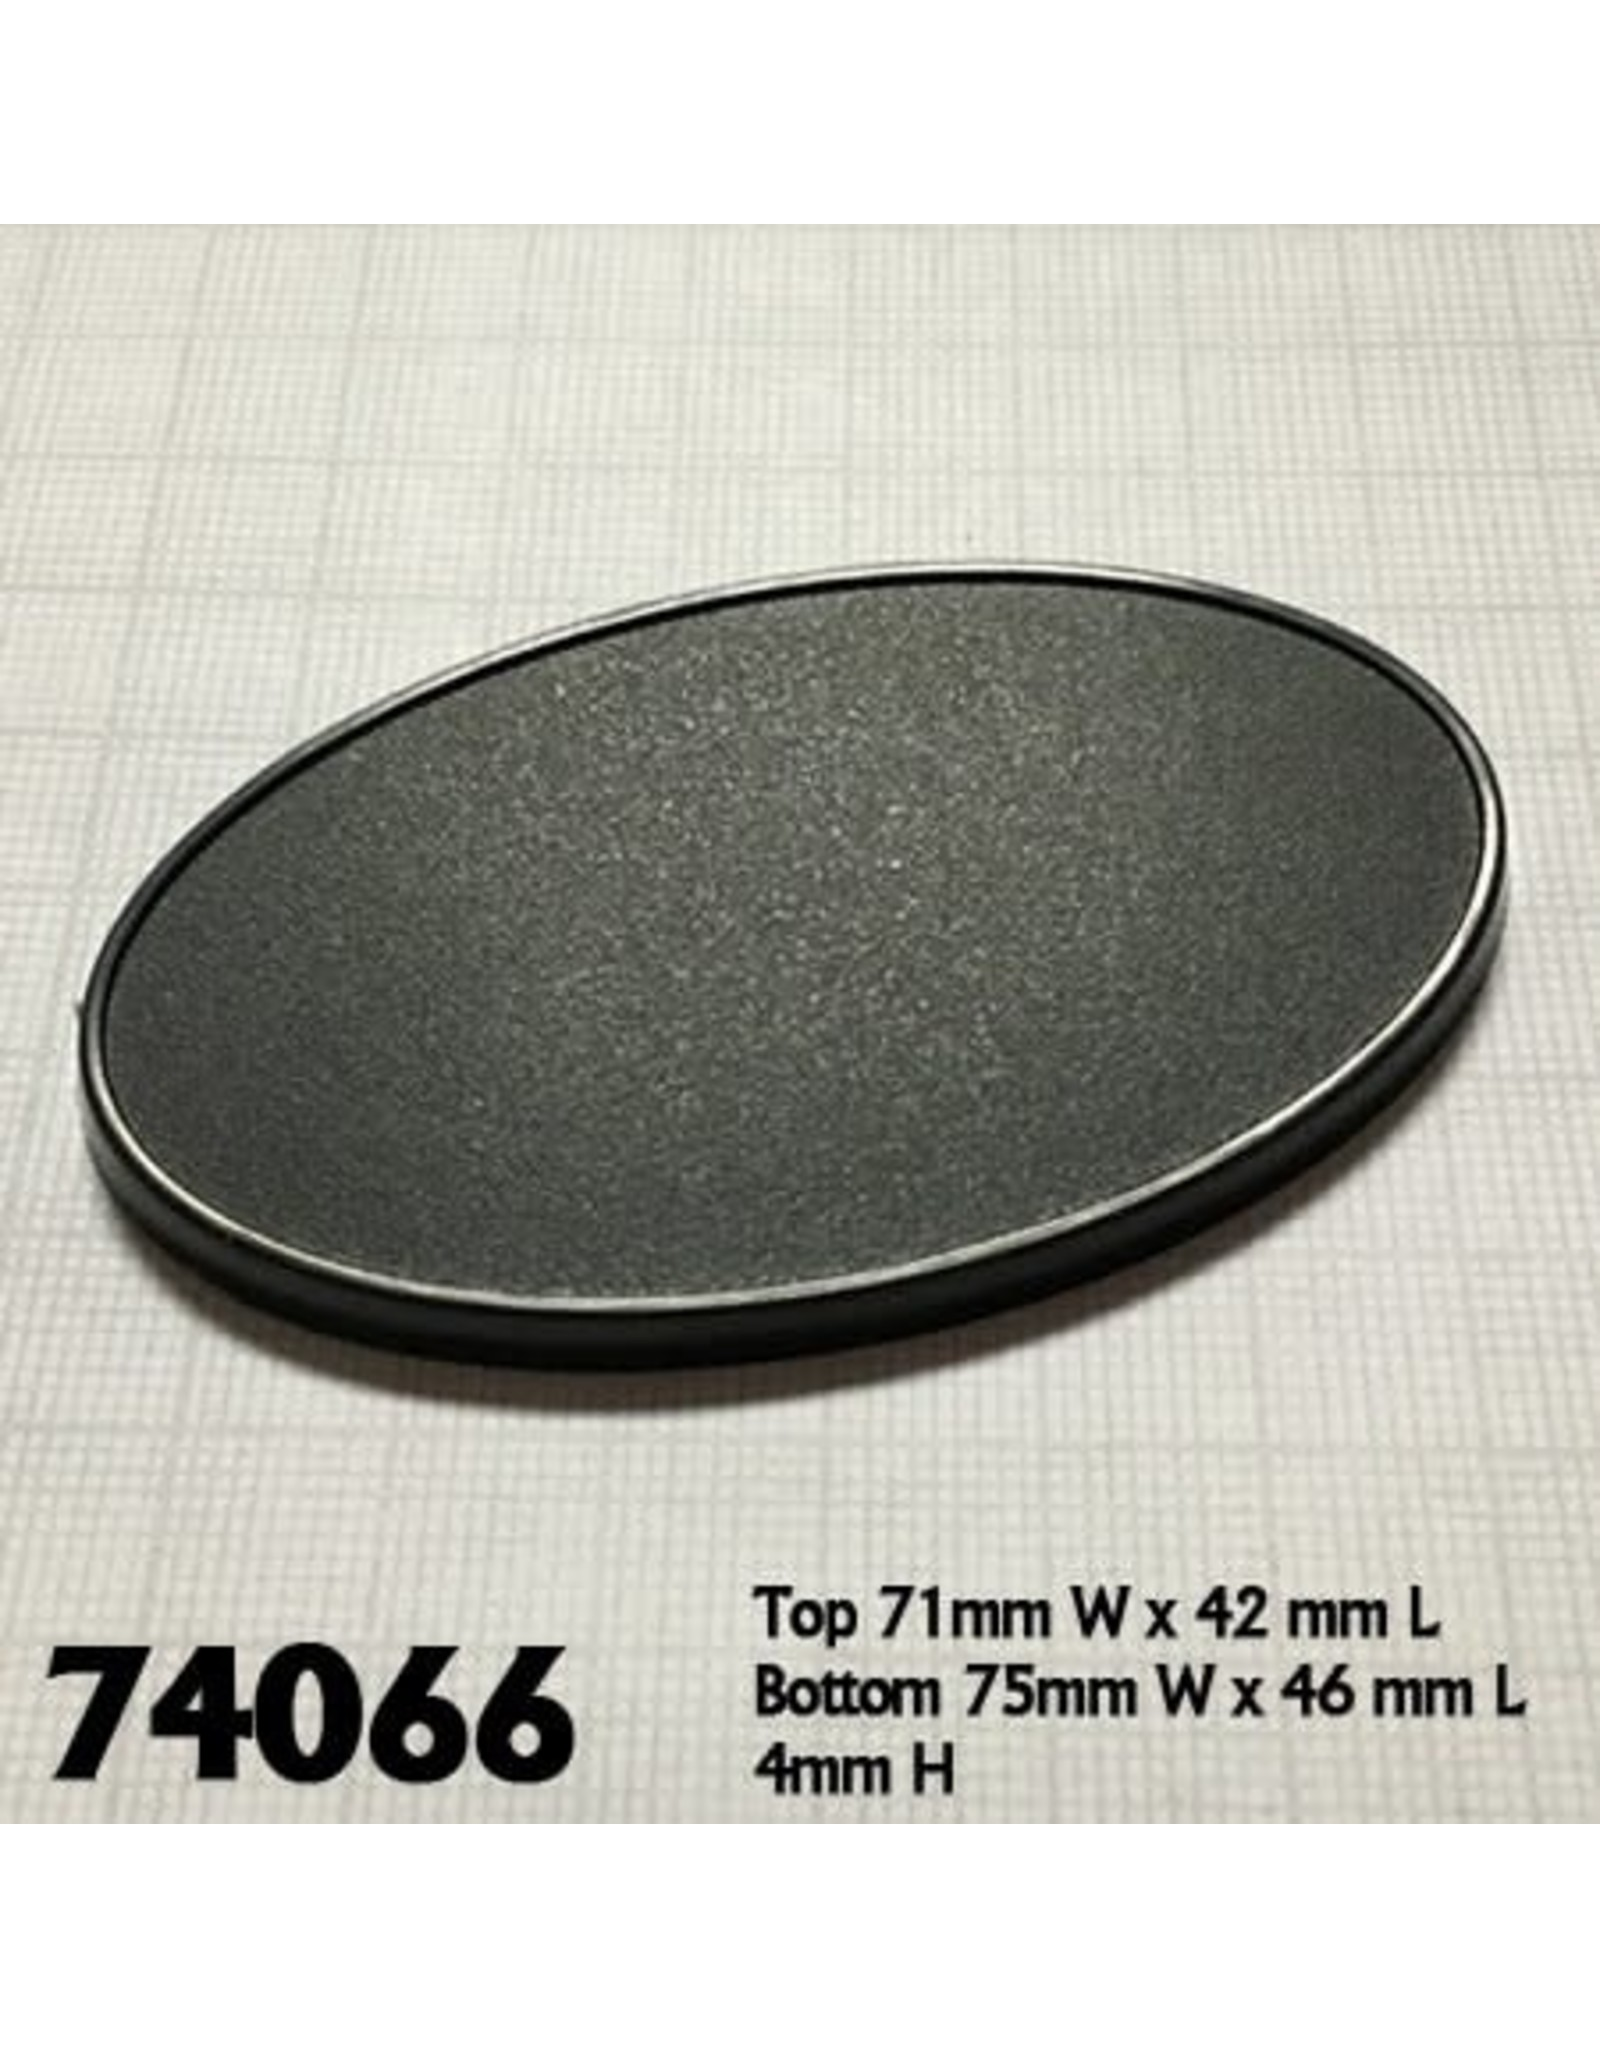 Reaper Miniatures 75mm x 46mm Oval Gaming Base